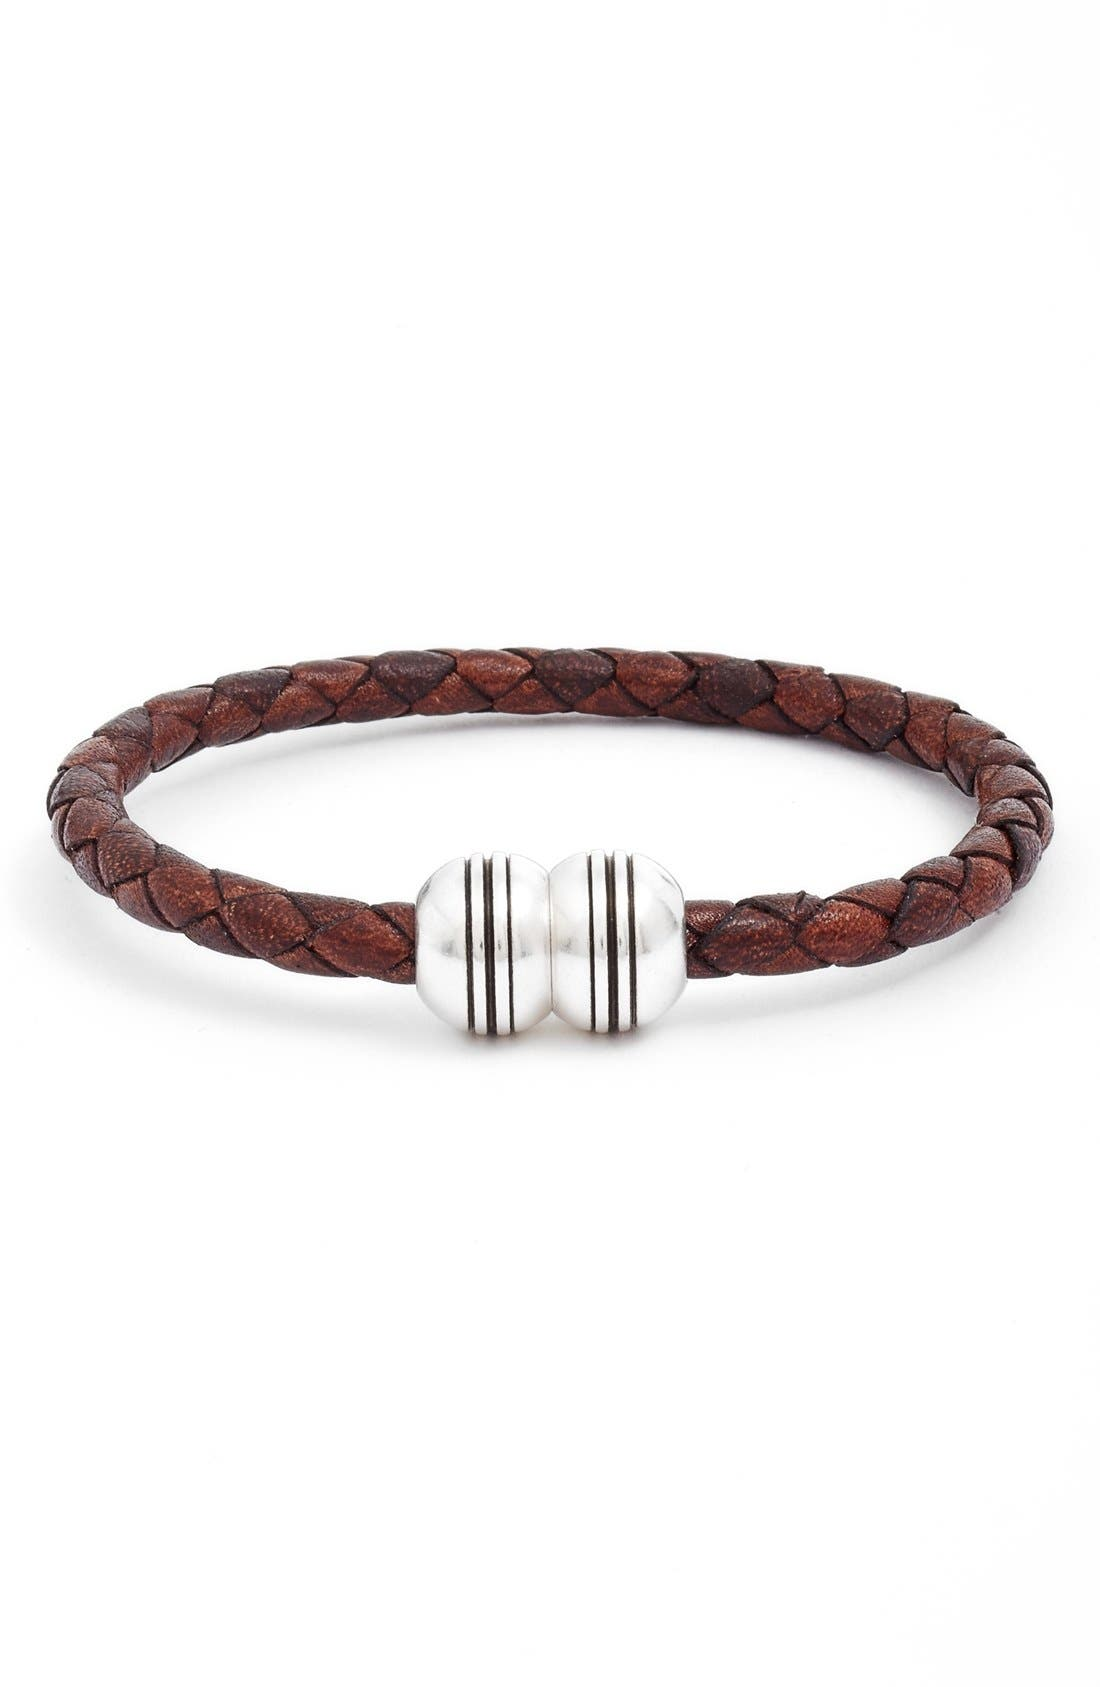 Braided Leather Bracelet,                             Main thumbnail 1, color,                             Brown